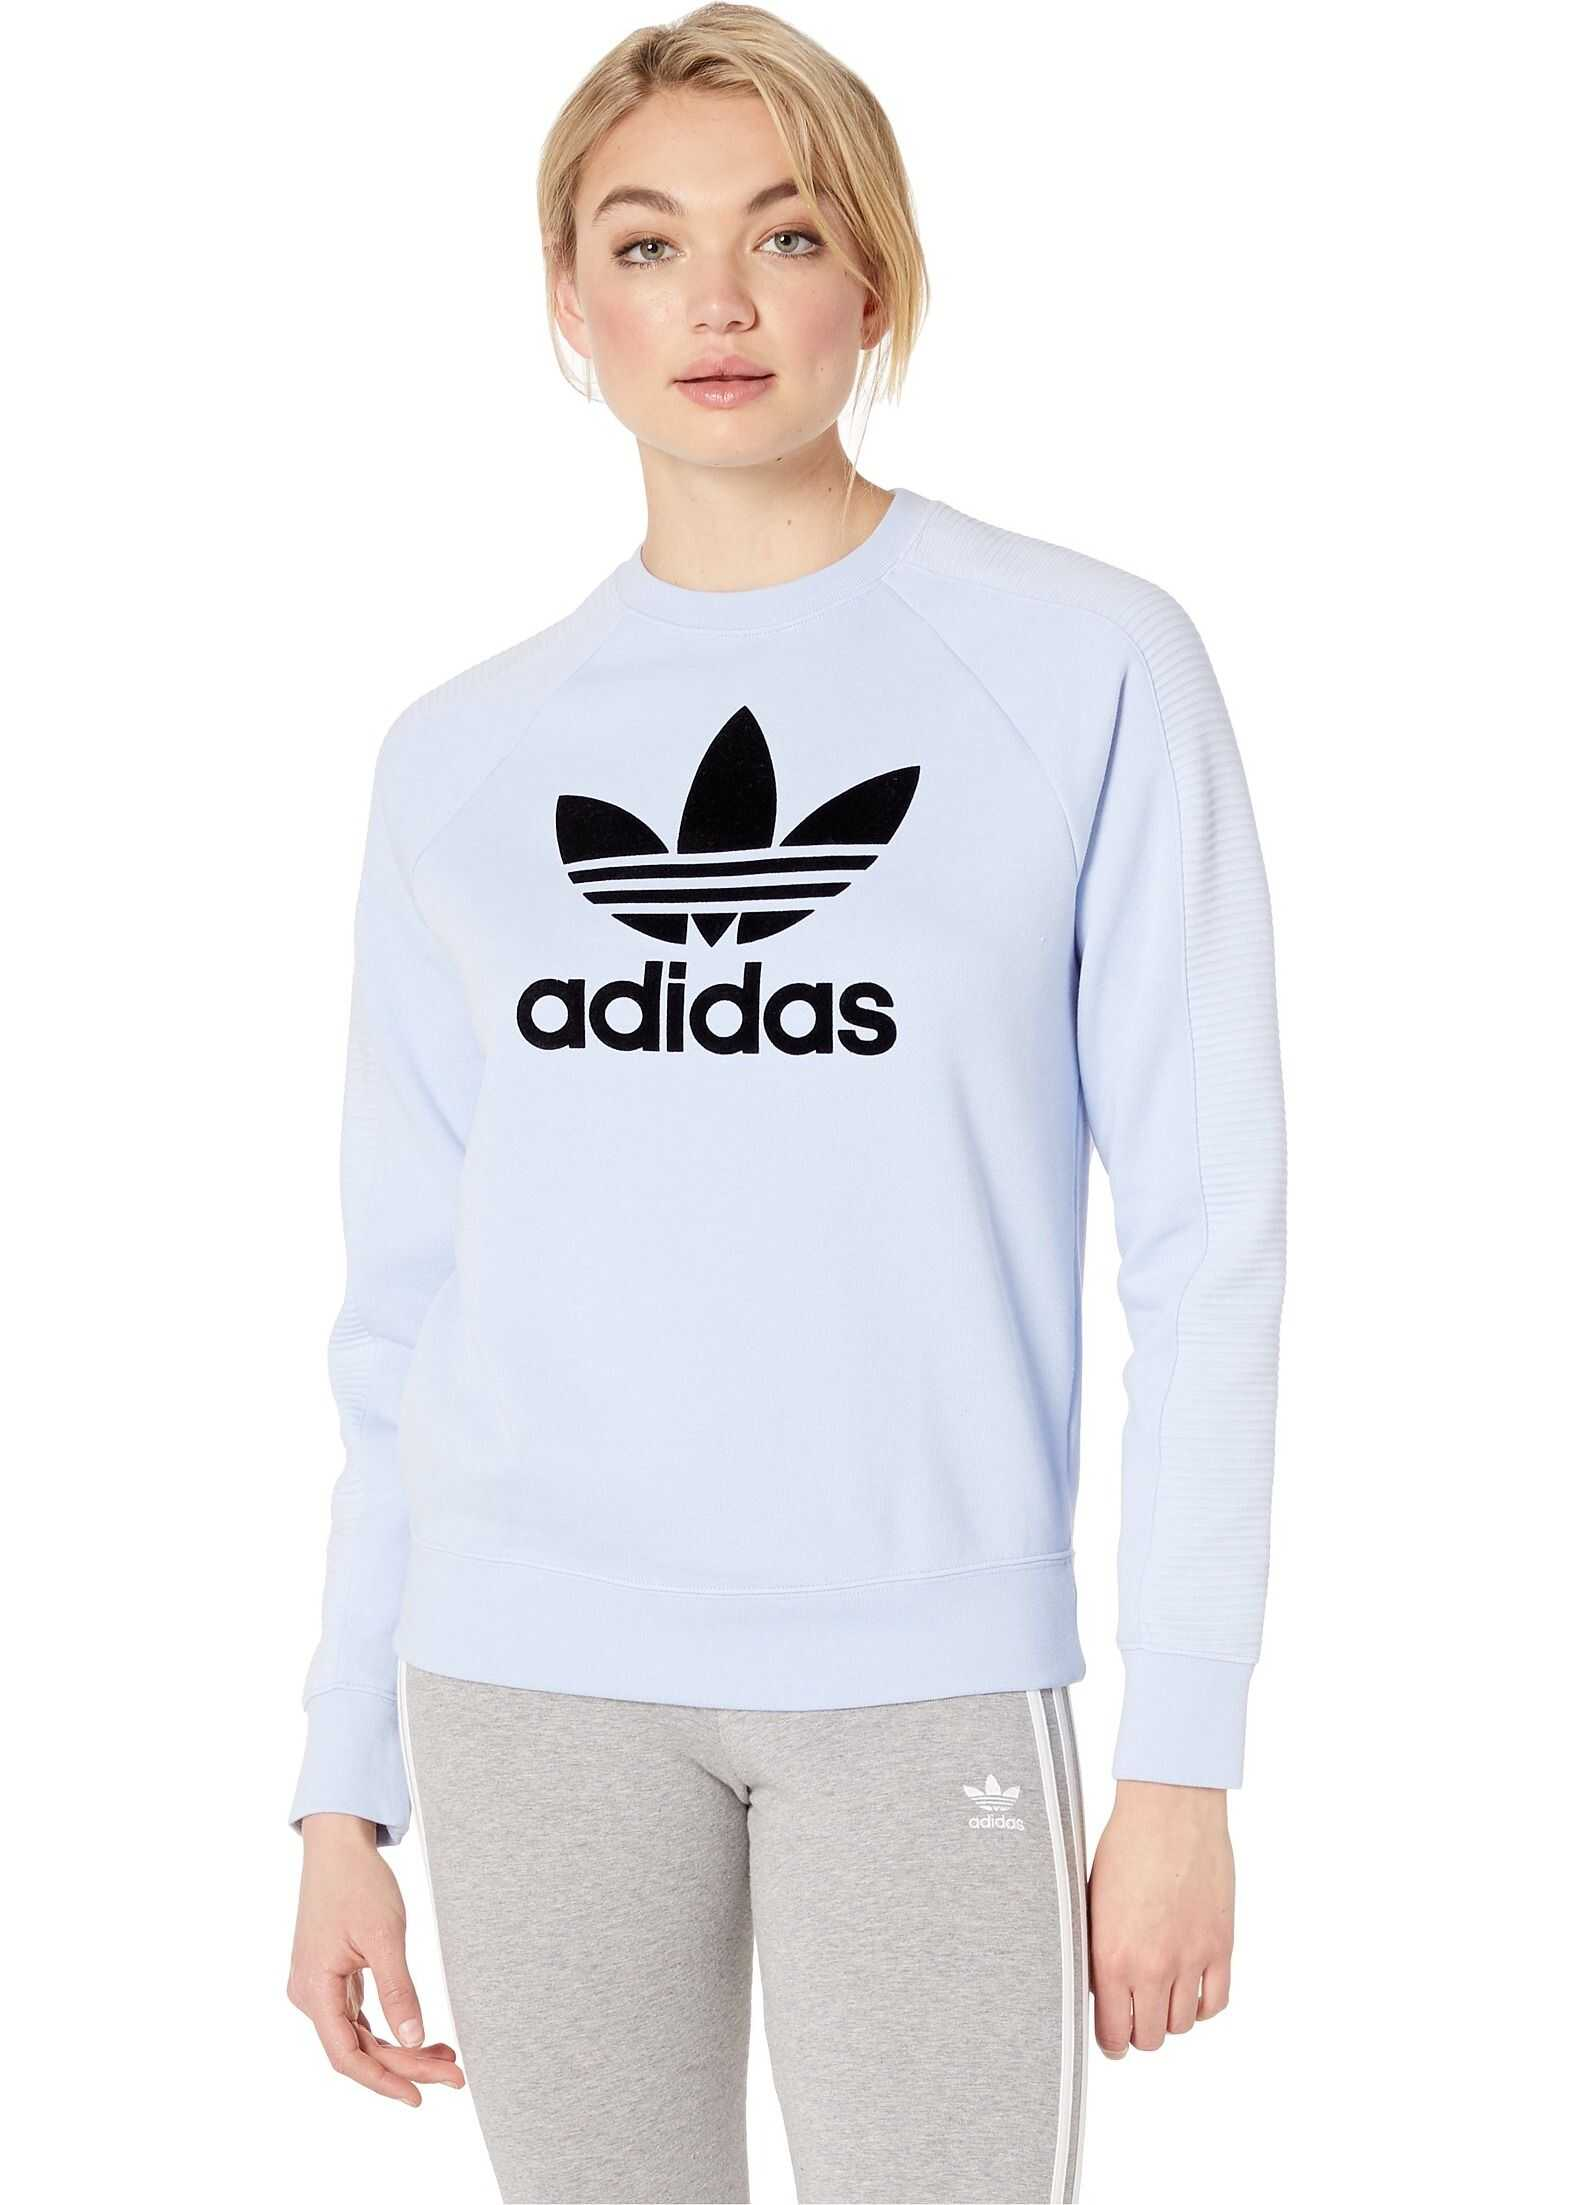 adidas Originals Sweater Periwinkle/Black